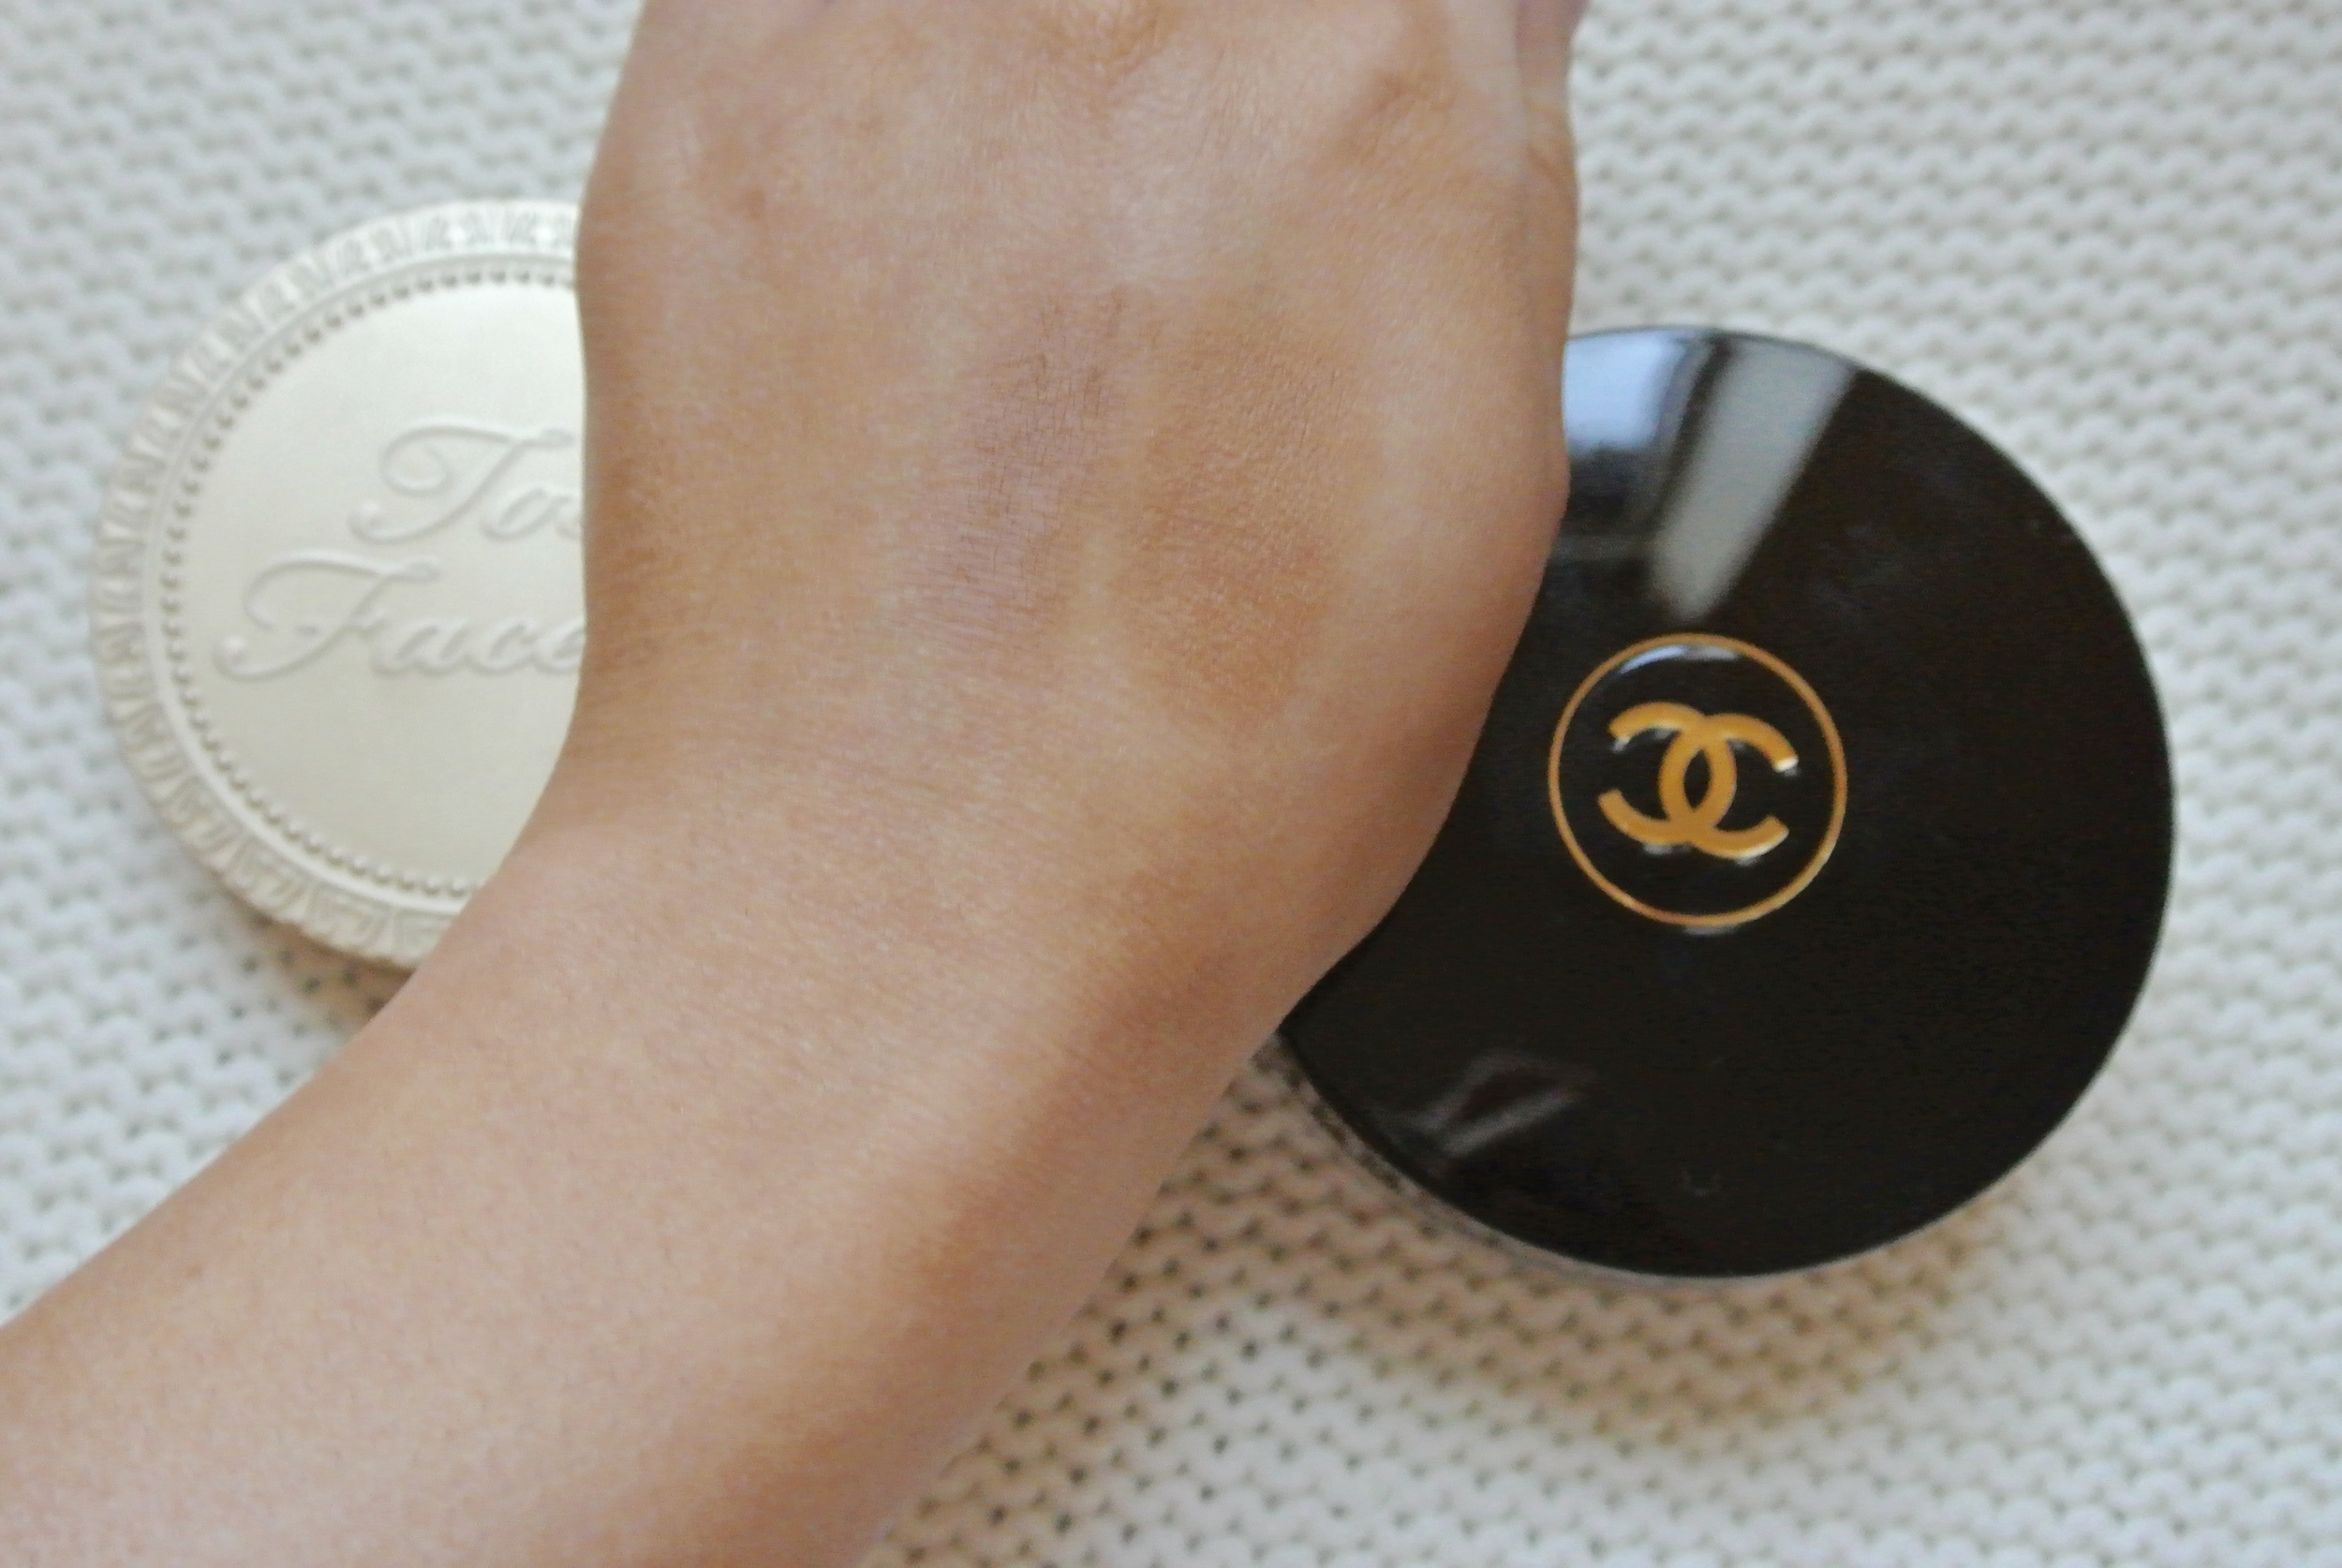 Chanel Soleil Tan De Chanel vs Too Faced Chocolate Soleil